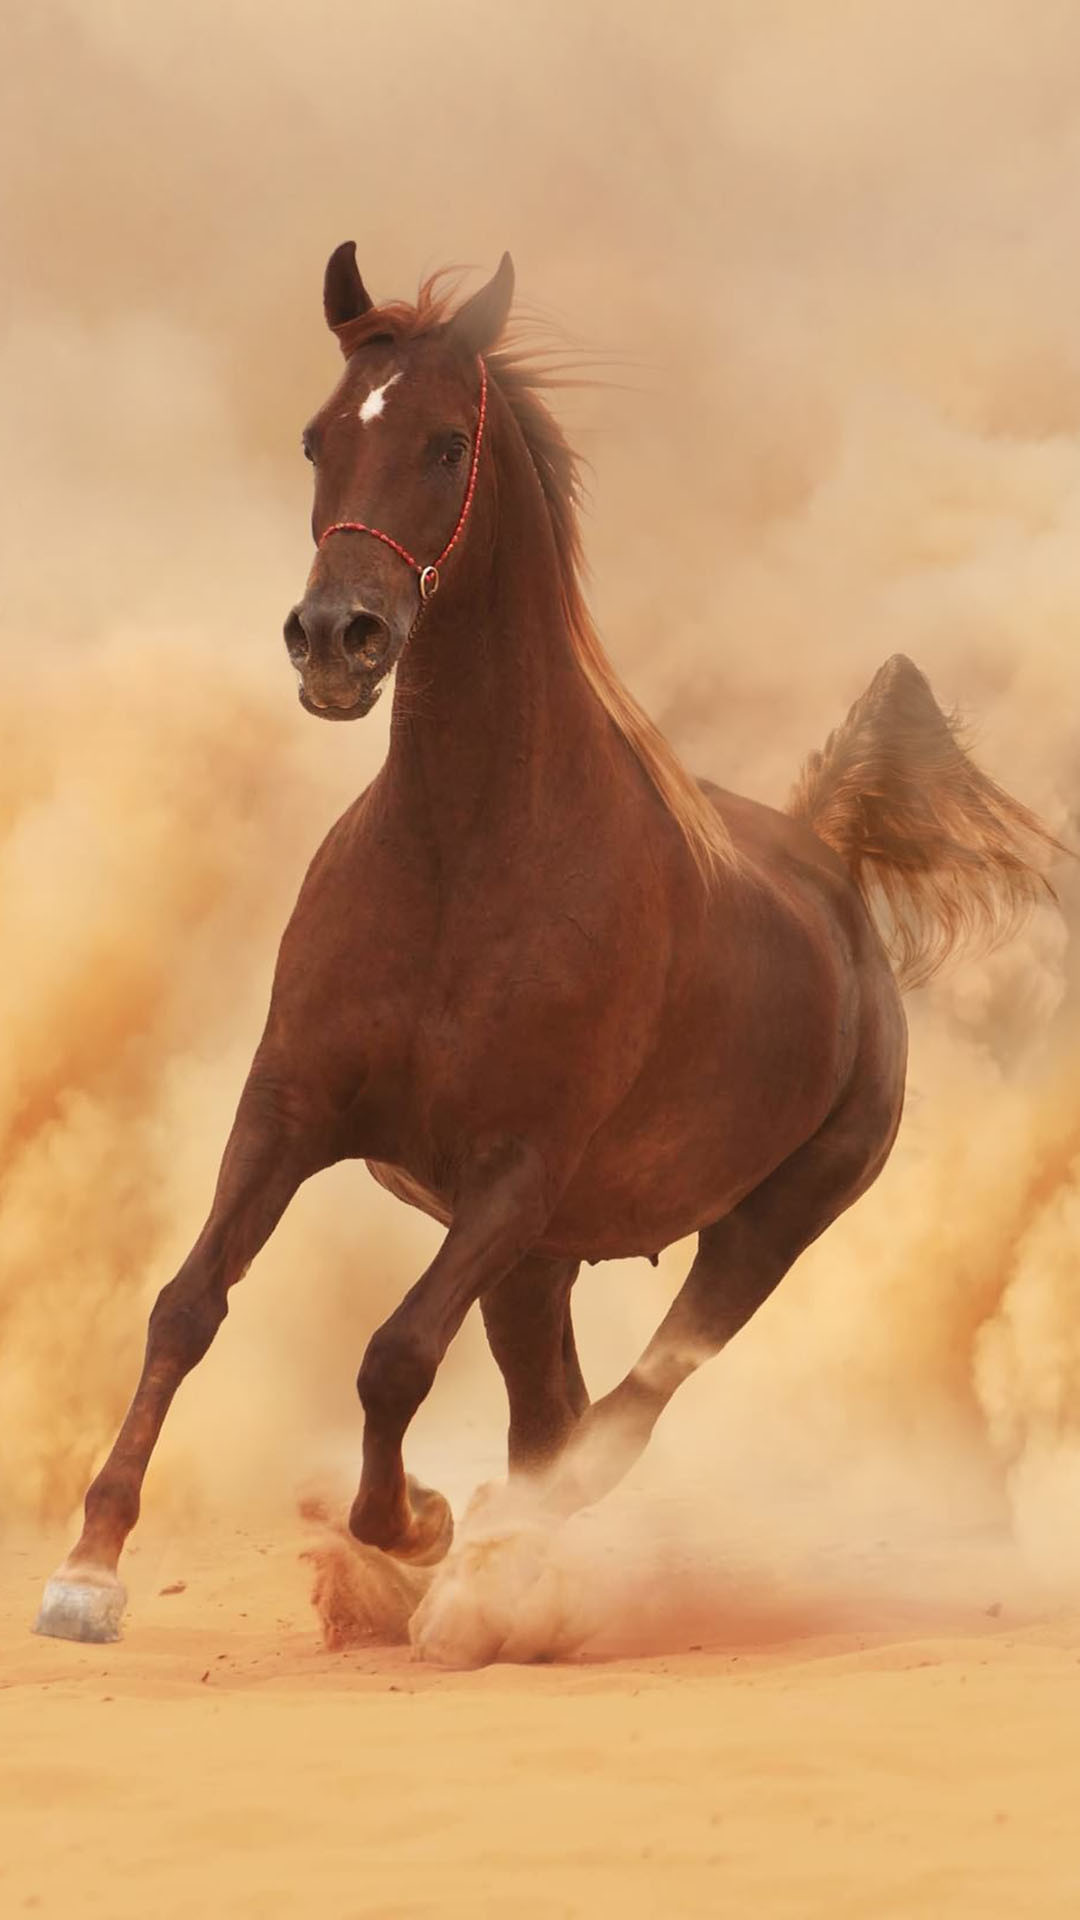 Arabian Horse Photo Gallery Wallpaper 53 Images